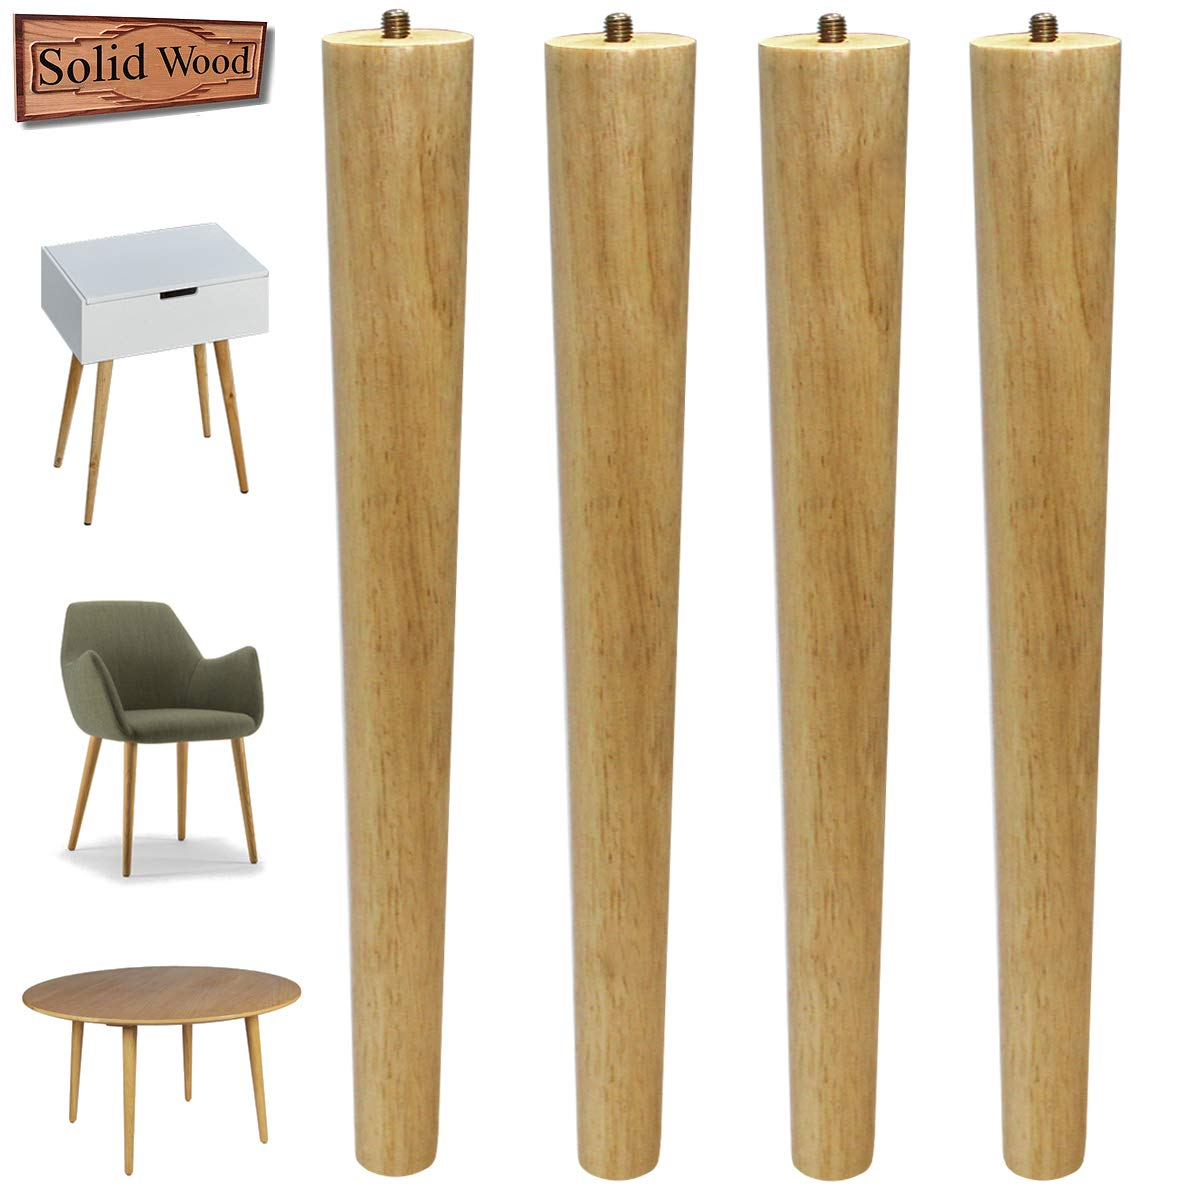 Enjoyable Table Legs 16 Inch Wood Furniture Legs For Coffee Table End Table Mid Century Modern Diy Furniture Tapered Natural Threaded 5 16 Hanger Bolts Pack Cjindustries Chair Design For Home Cjindustriesco